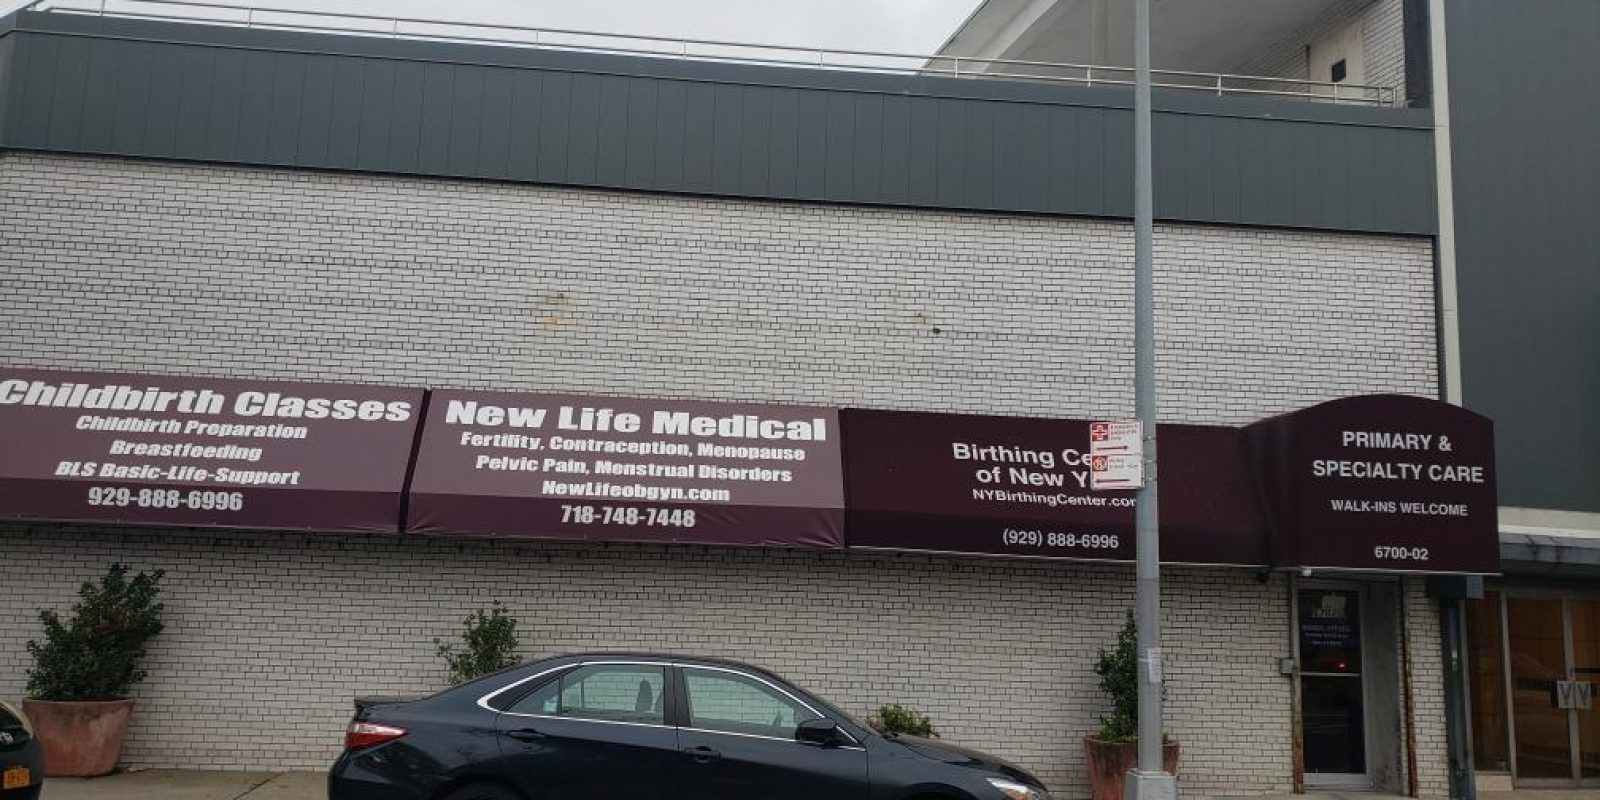 the birthing center of ny located at 6700 3rd ave